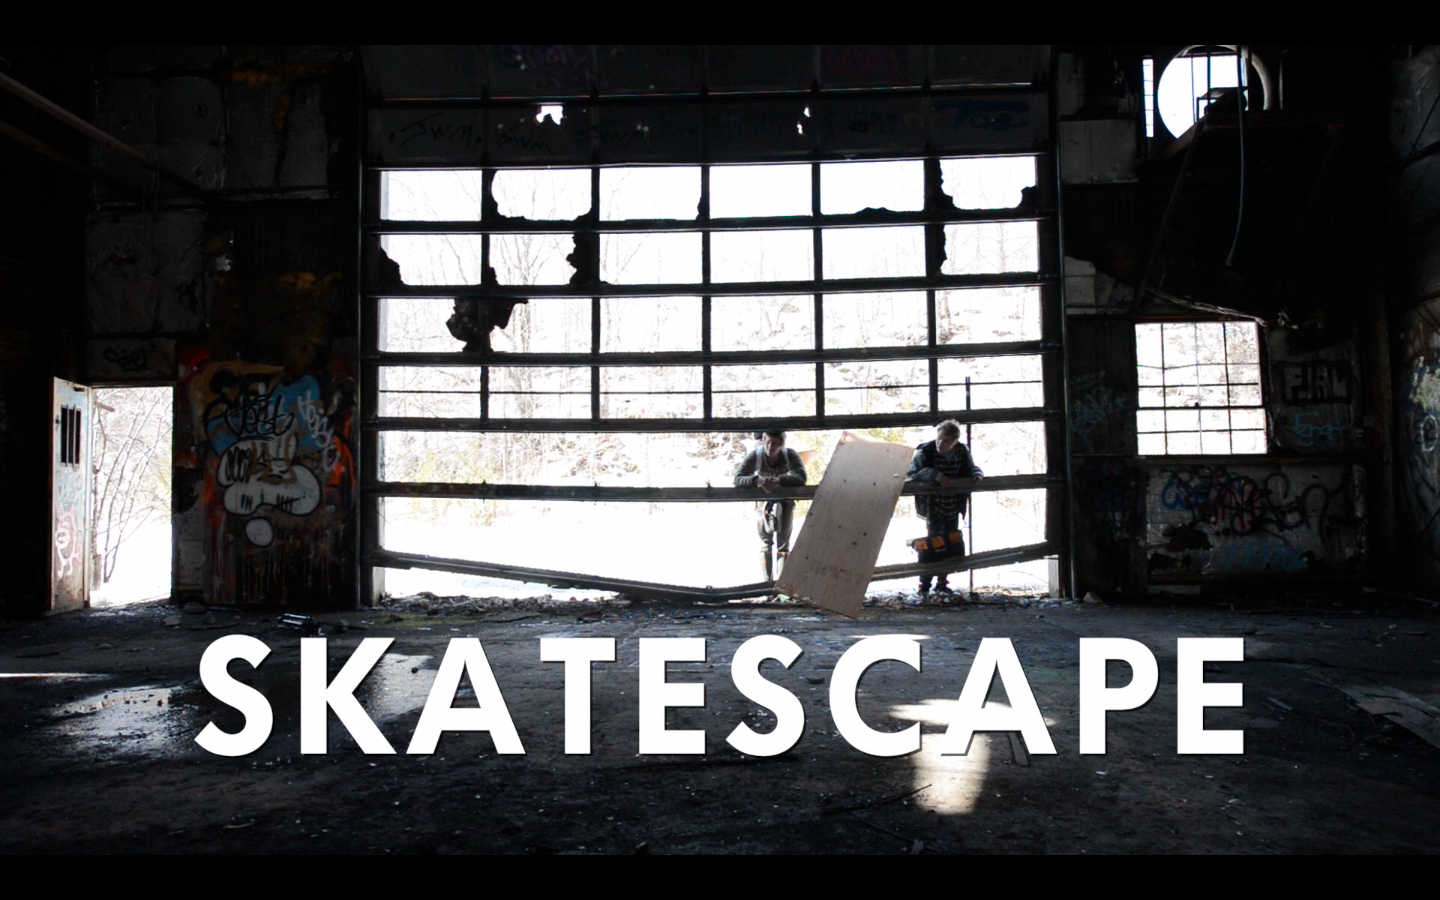 During the middle of February in Central New York, it is difficult to beat the monotony of an indoor park and find a spot that spawns creativity. {quote}Skatescape{quote} features the birth of such a skate spot in a long abandoned industrial building.